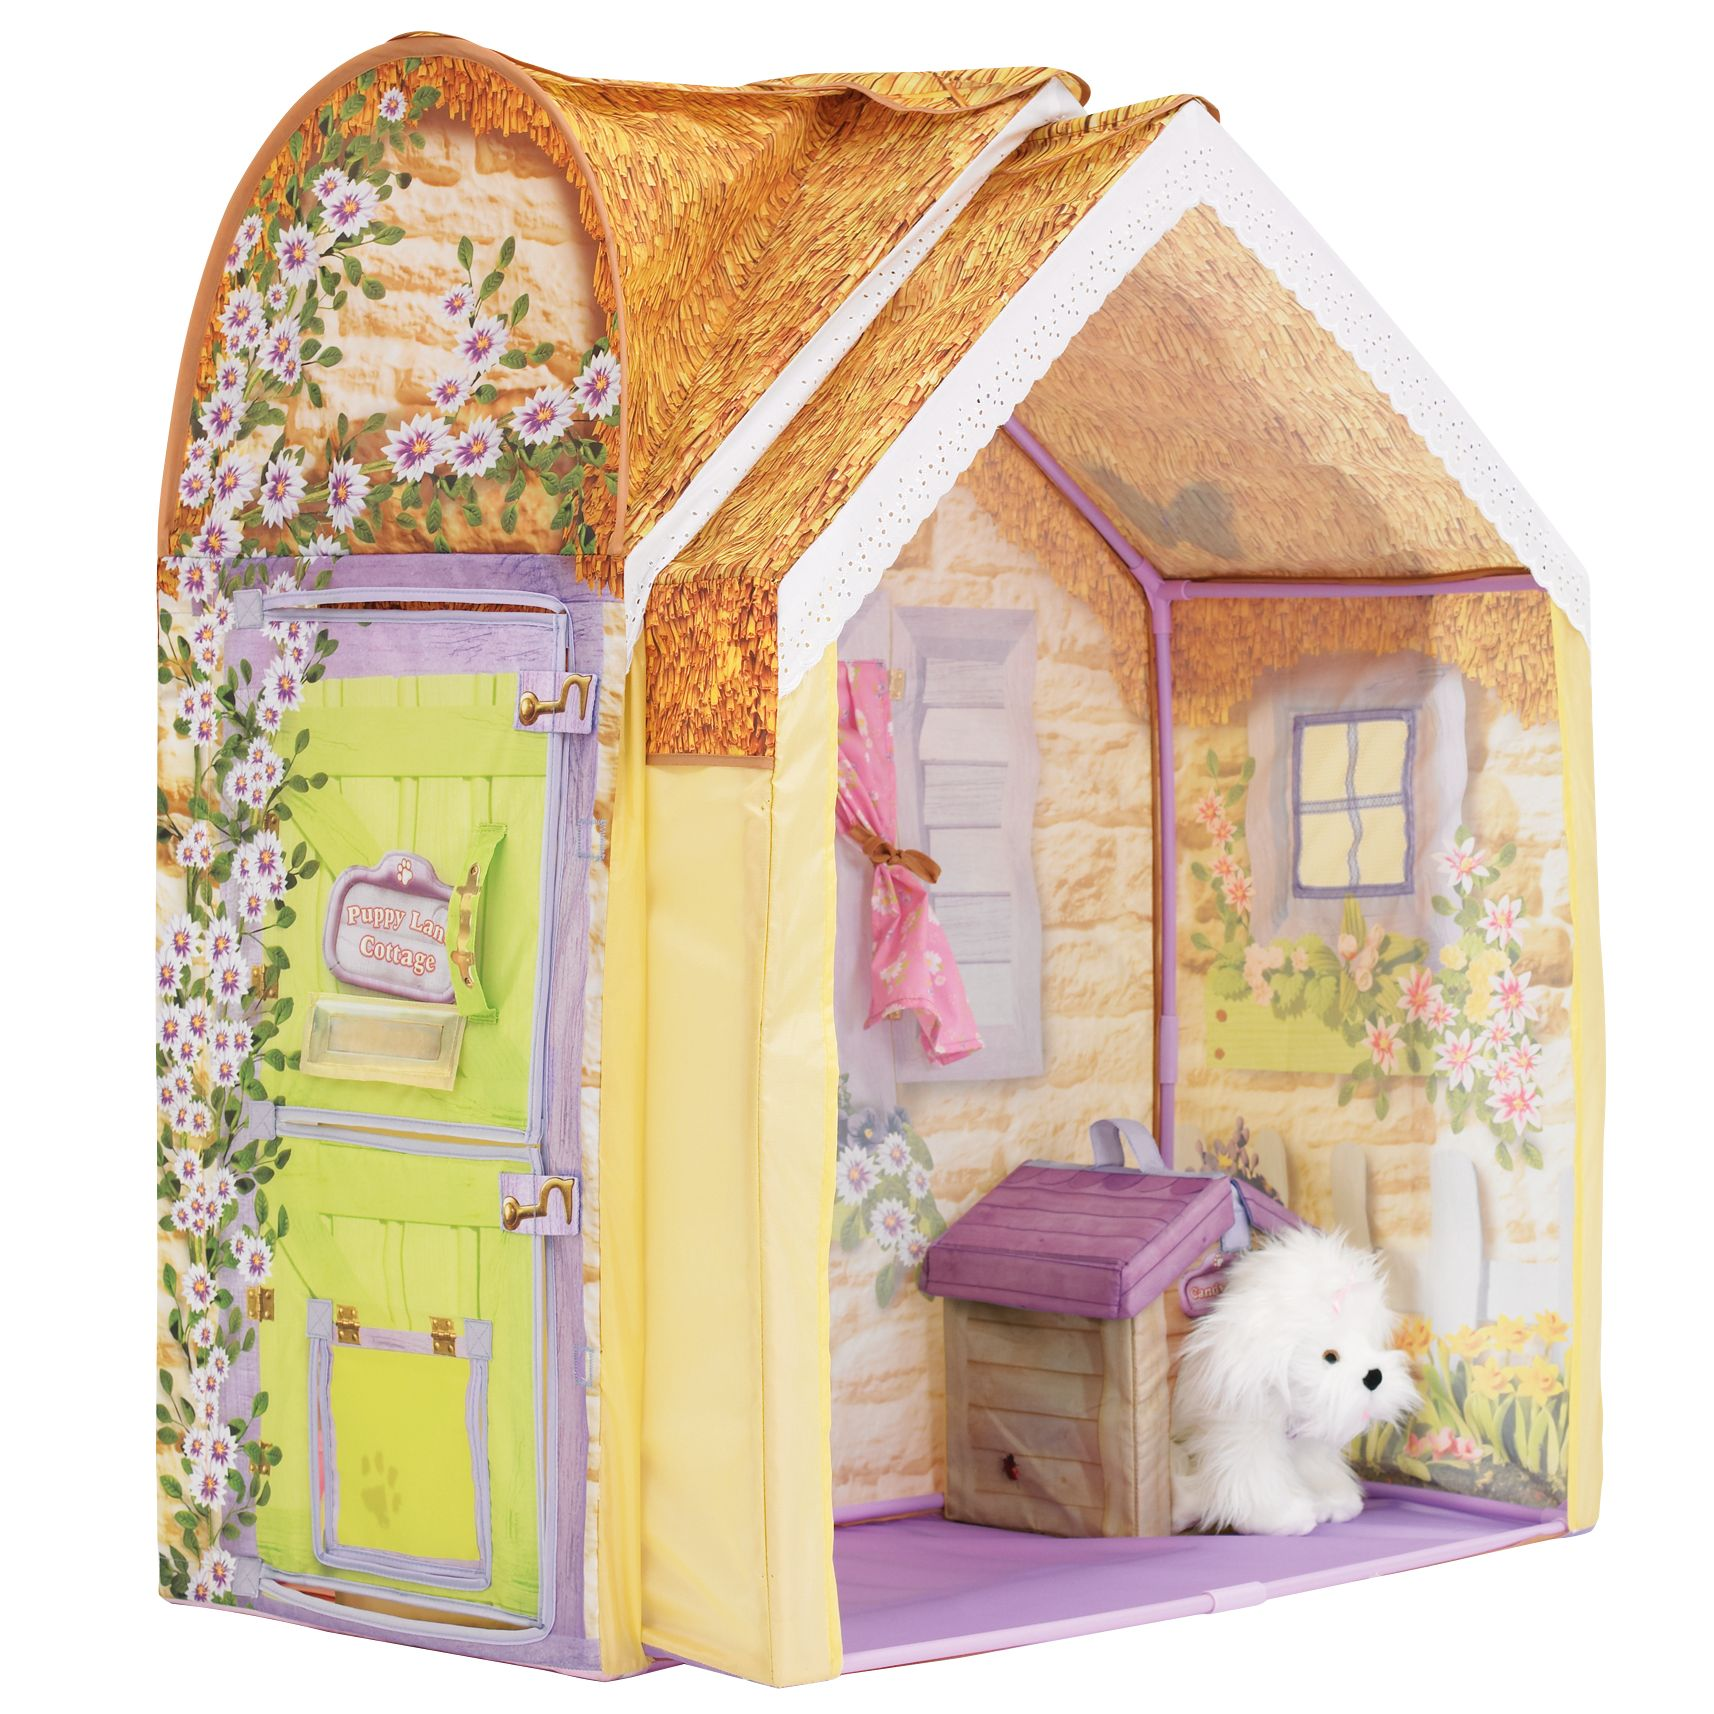 Dream Town Puppy Lane Cottage